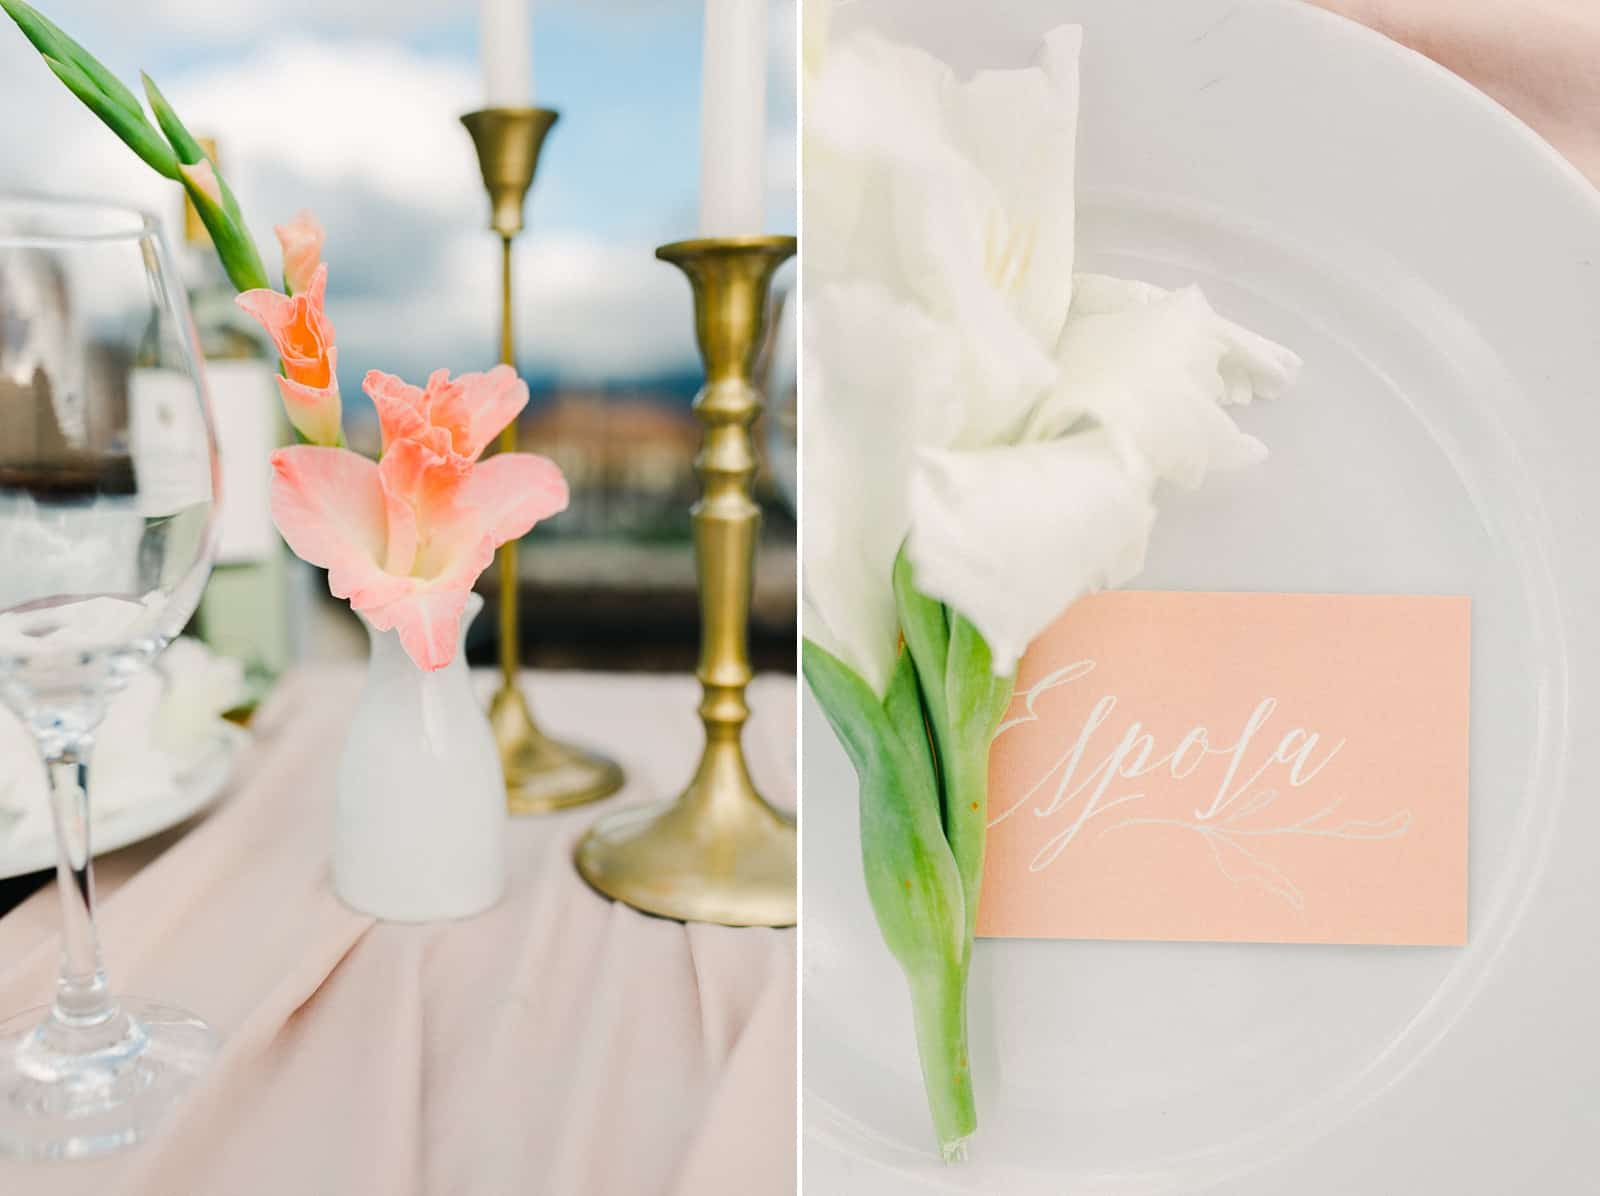 Cusco Peru Destination Wedding Inspiration, travel photography, pink blush tablecloth, wedding dinner tablescapre place setting centerpiece place cards